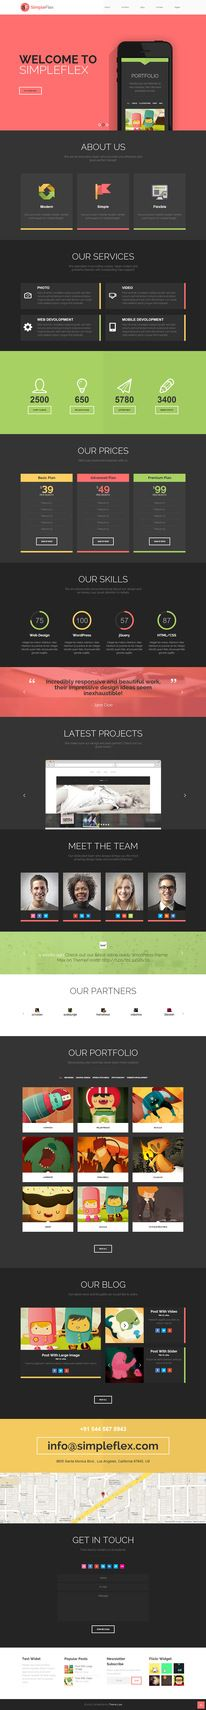 Flat One Page WordPress Theme — Designspiration